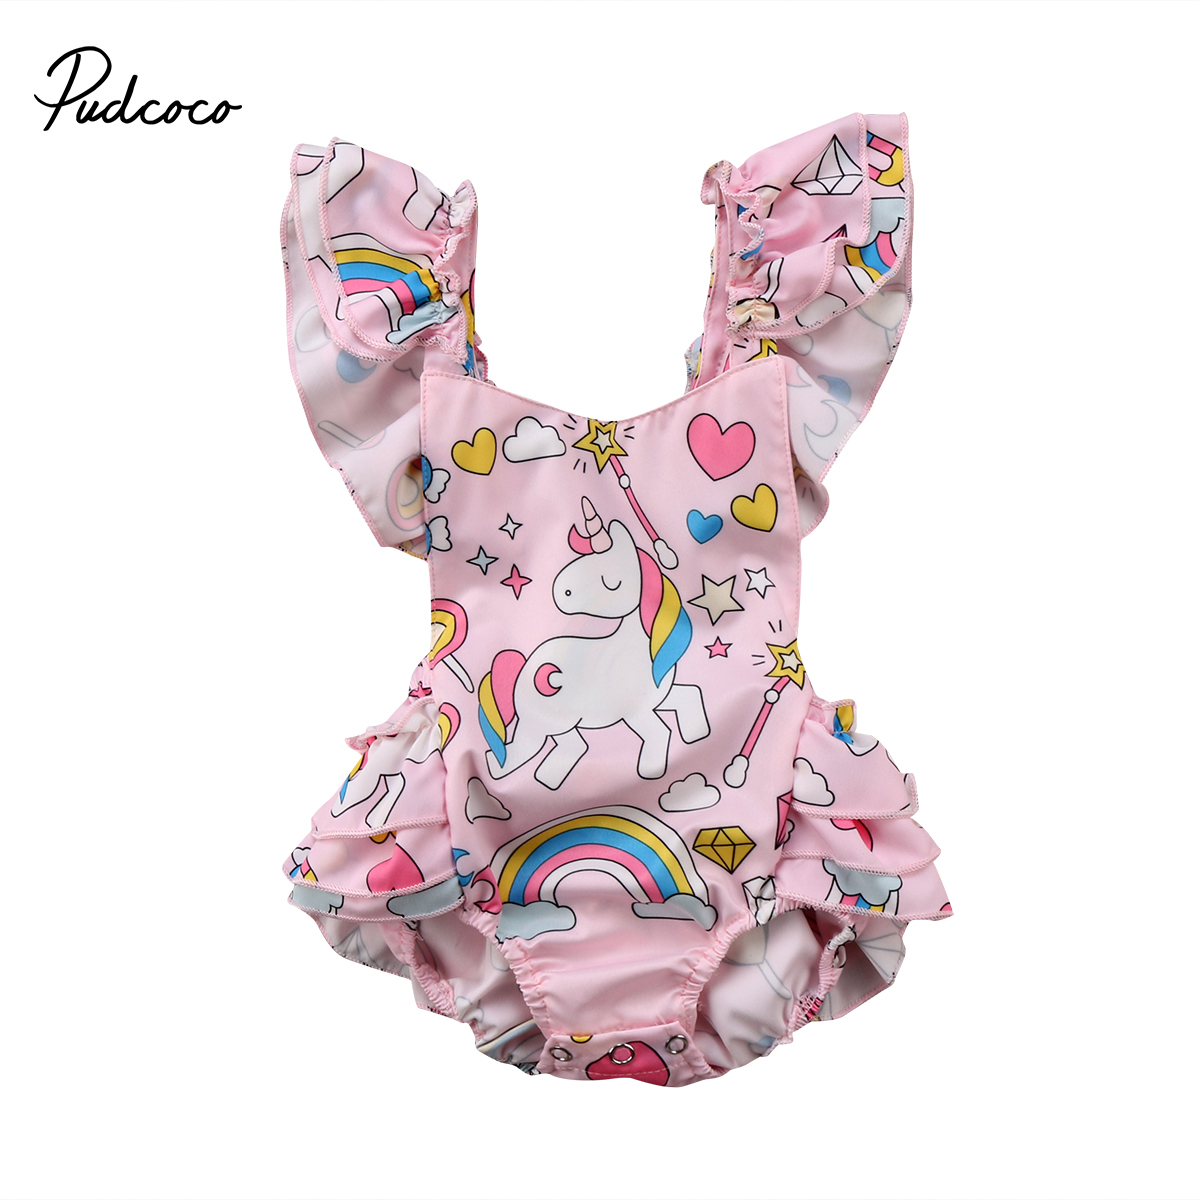 Pudcoco Cartoon Kid Baby Girls Backless Unicorn Romper Ruffle Cake Jumpsuit Outfits Summer Sunsuit Clothes Cotton One-Piece 2017 summer toddler kids girls striped baby romper off shoulder flare sleeve cotton clothes jumpsuit outfits sunsuit 0 4t